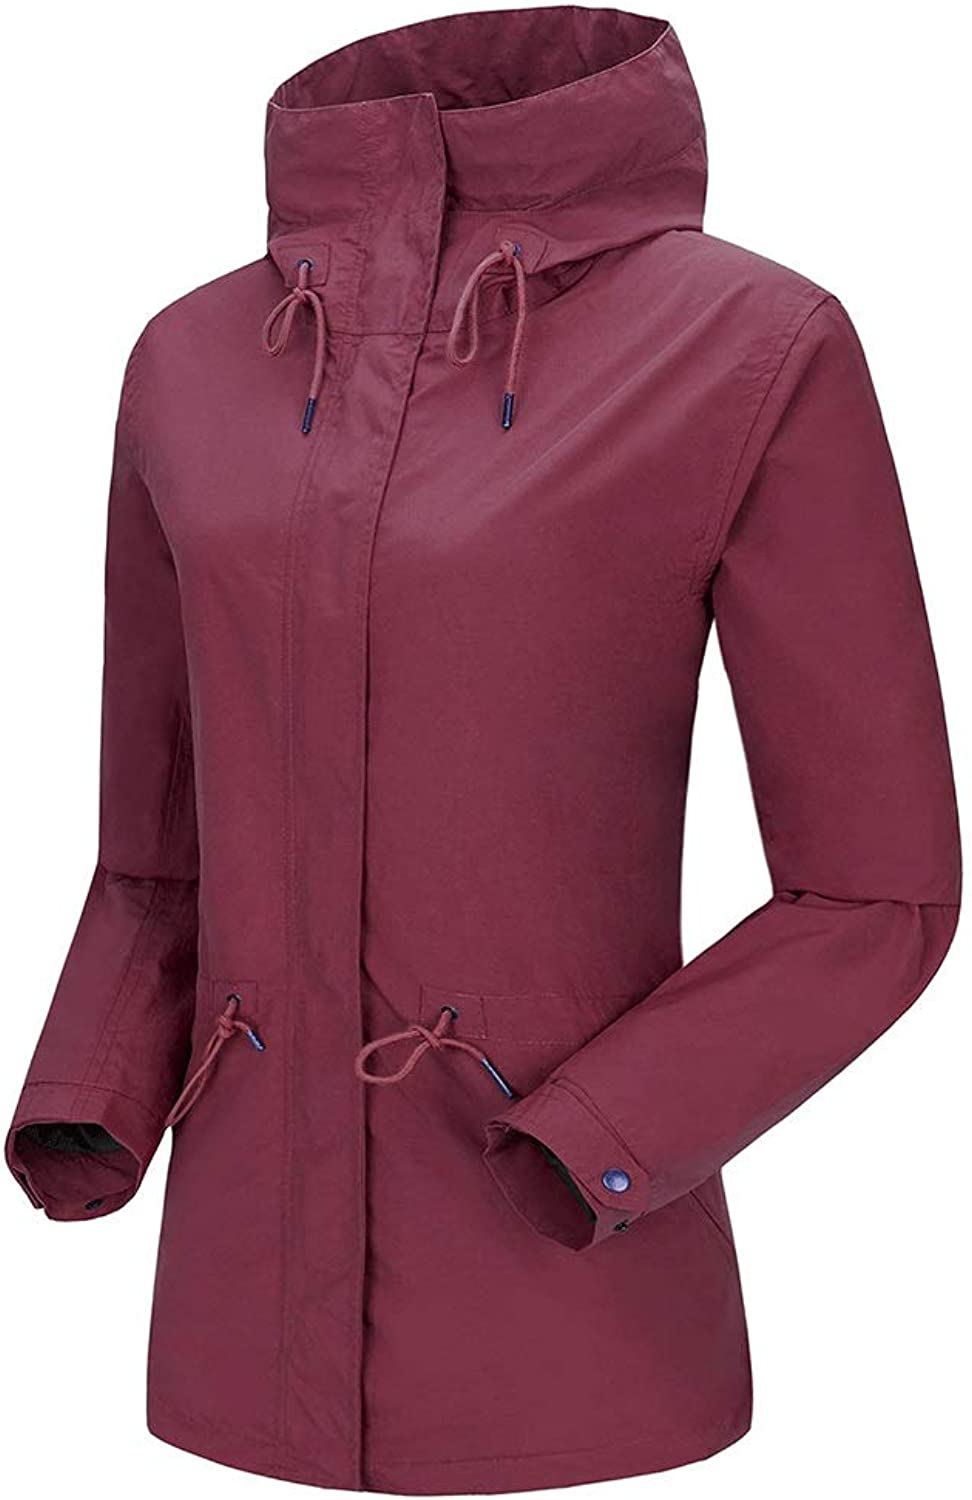 HUIFA Outdoor Girl Jacket Thickened in The Long Section Waterproof Breathable Mountaineering